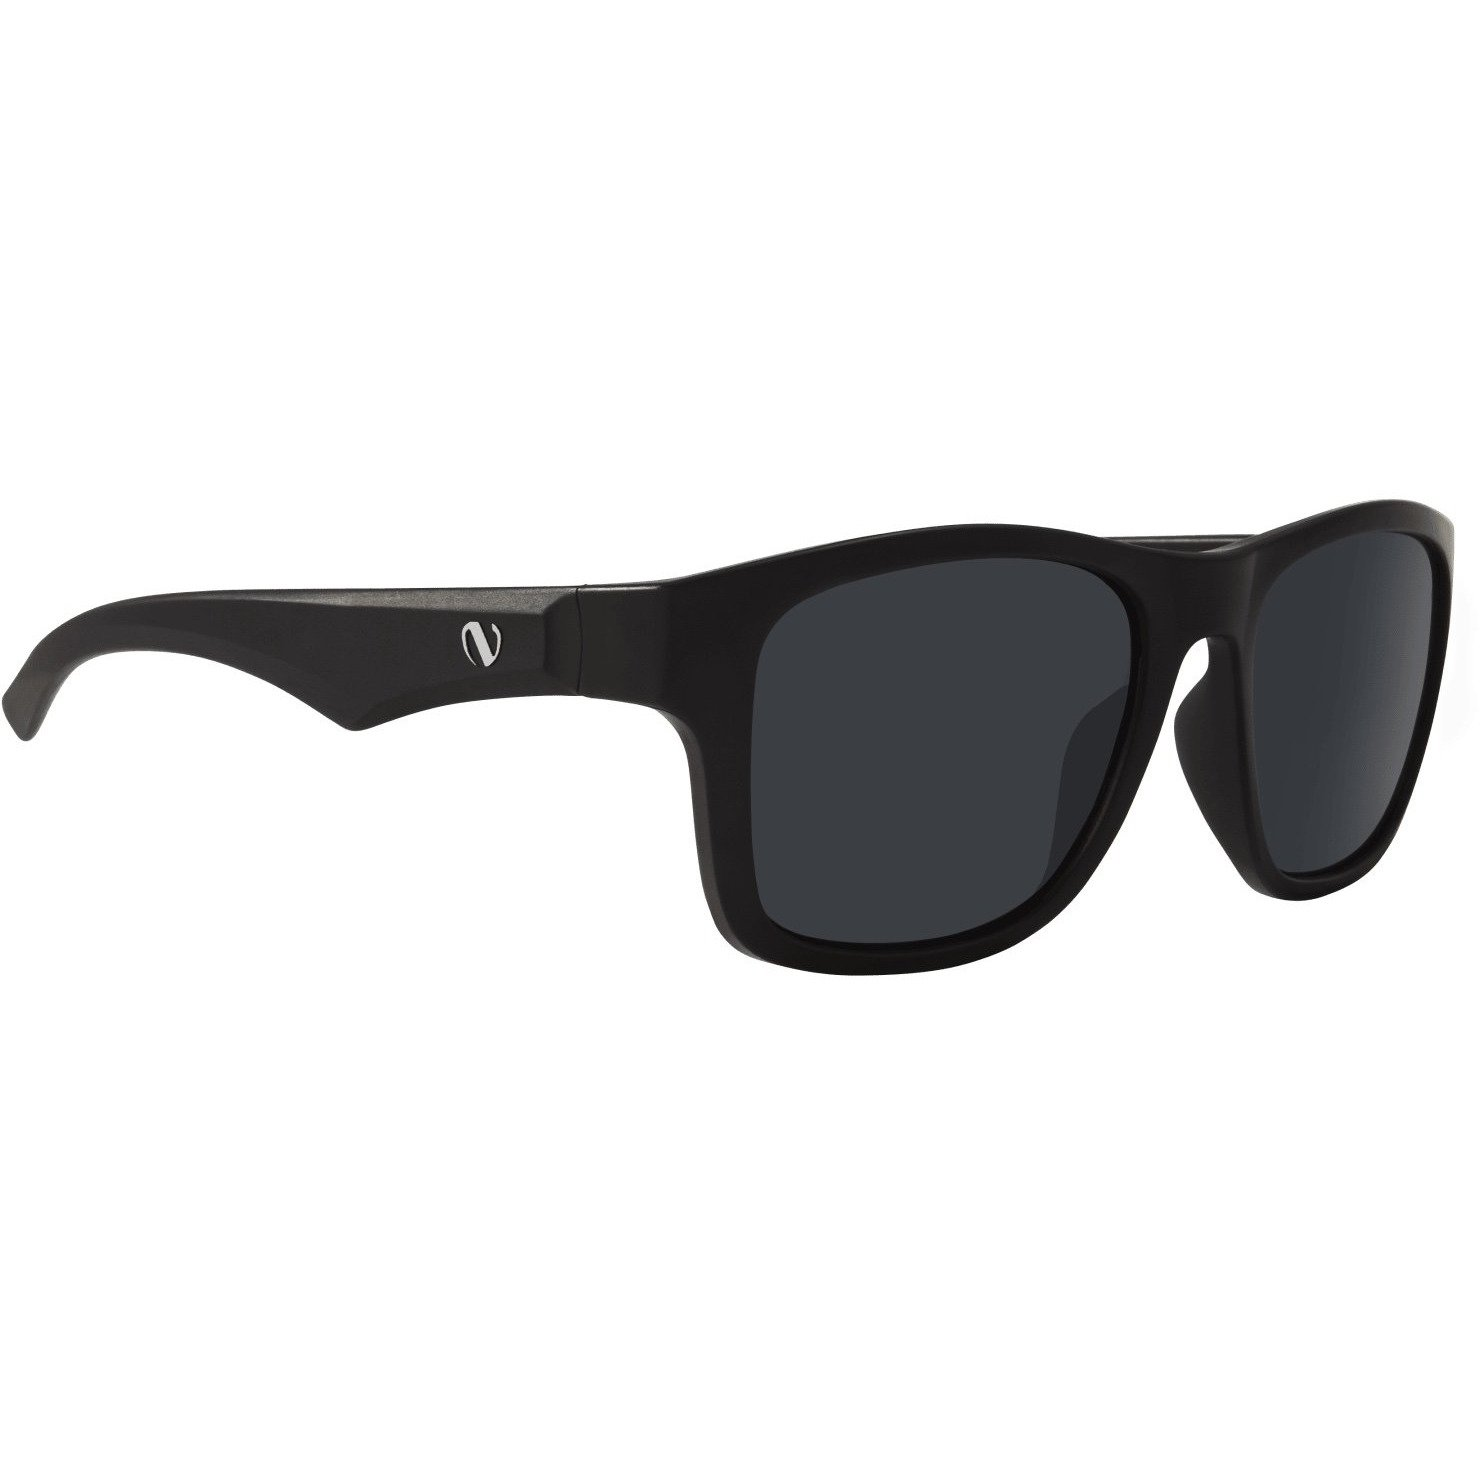 Northug Daycruiser Polarized Black/Grey